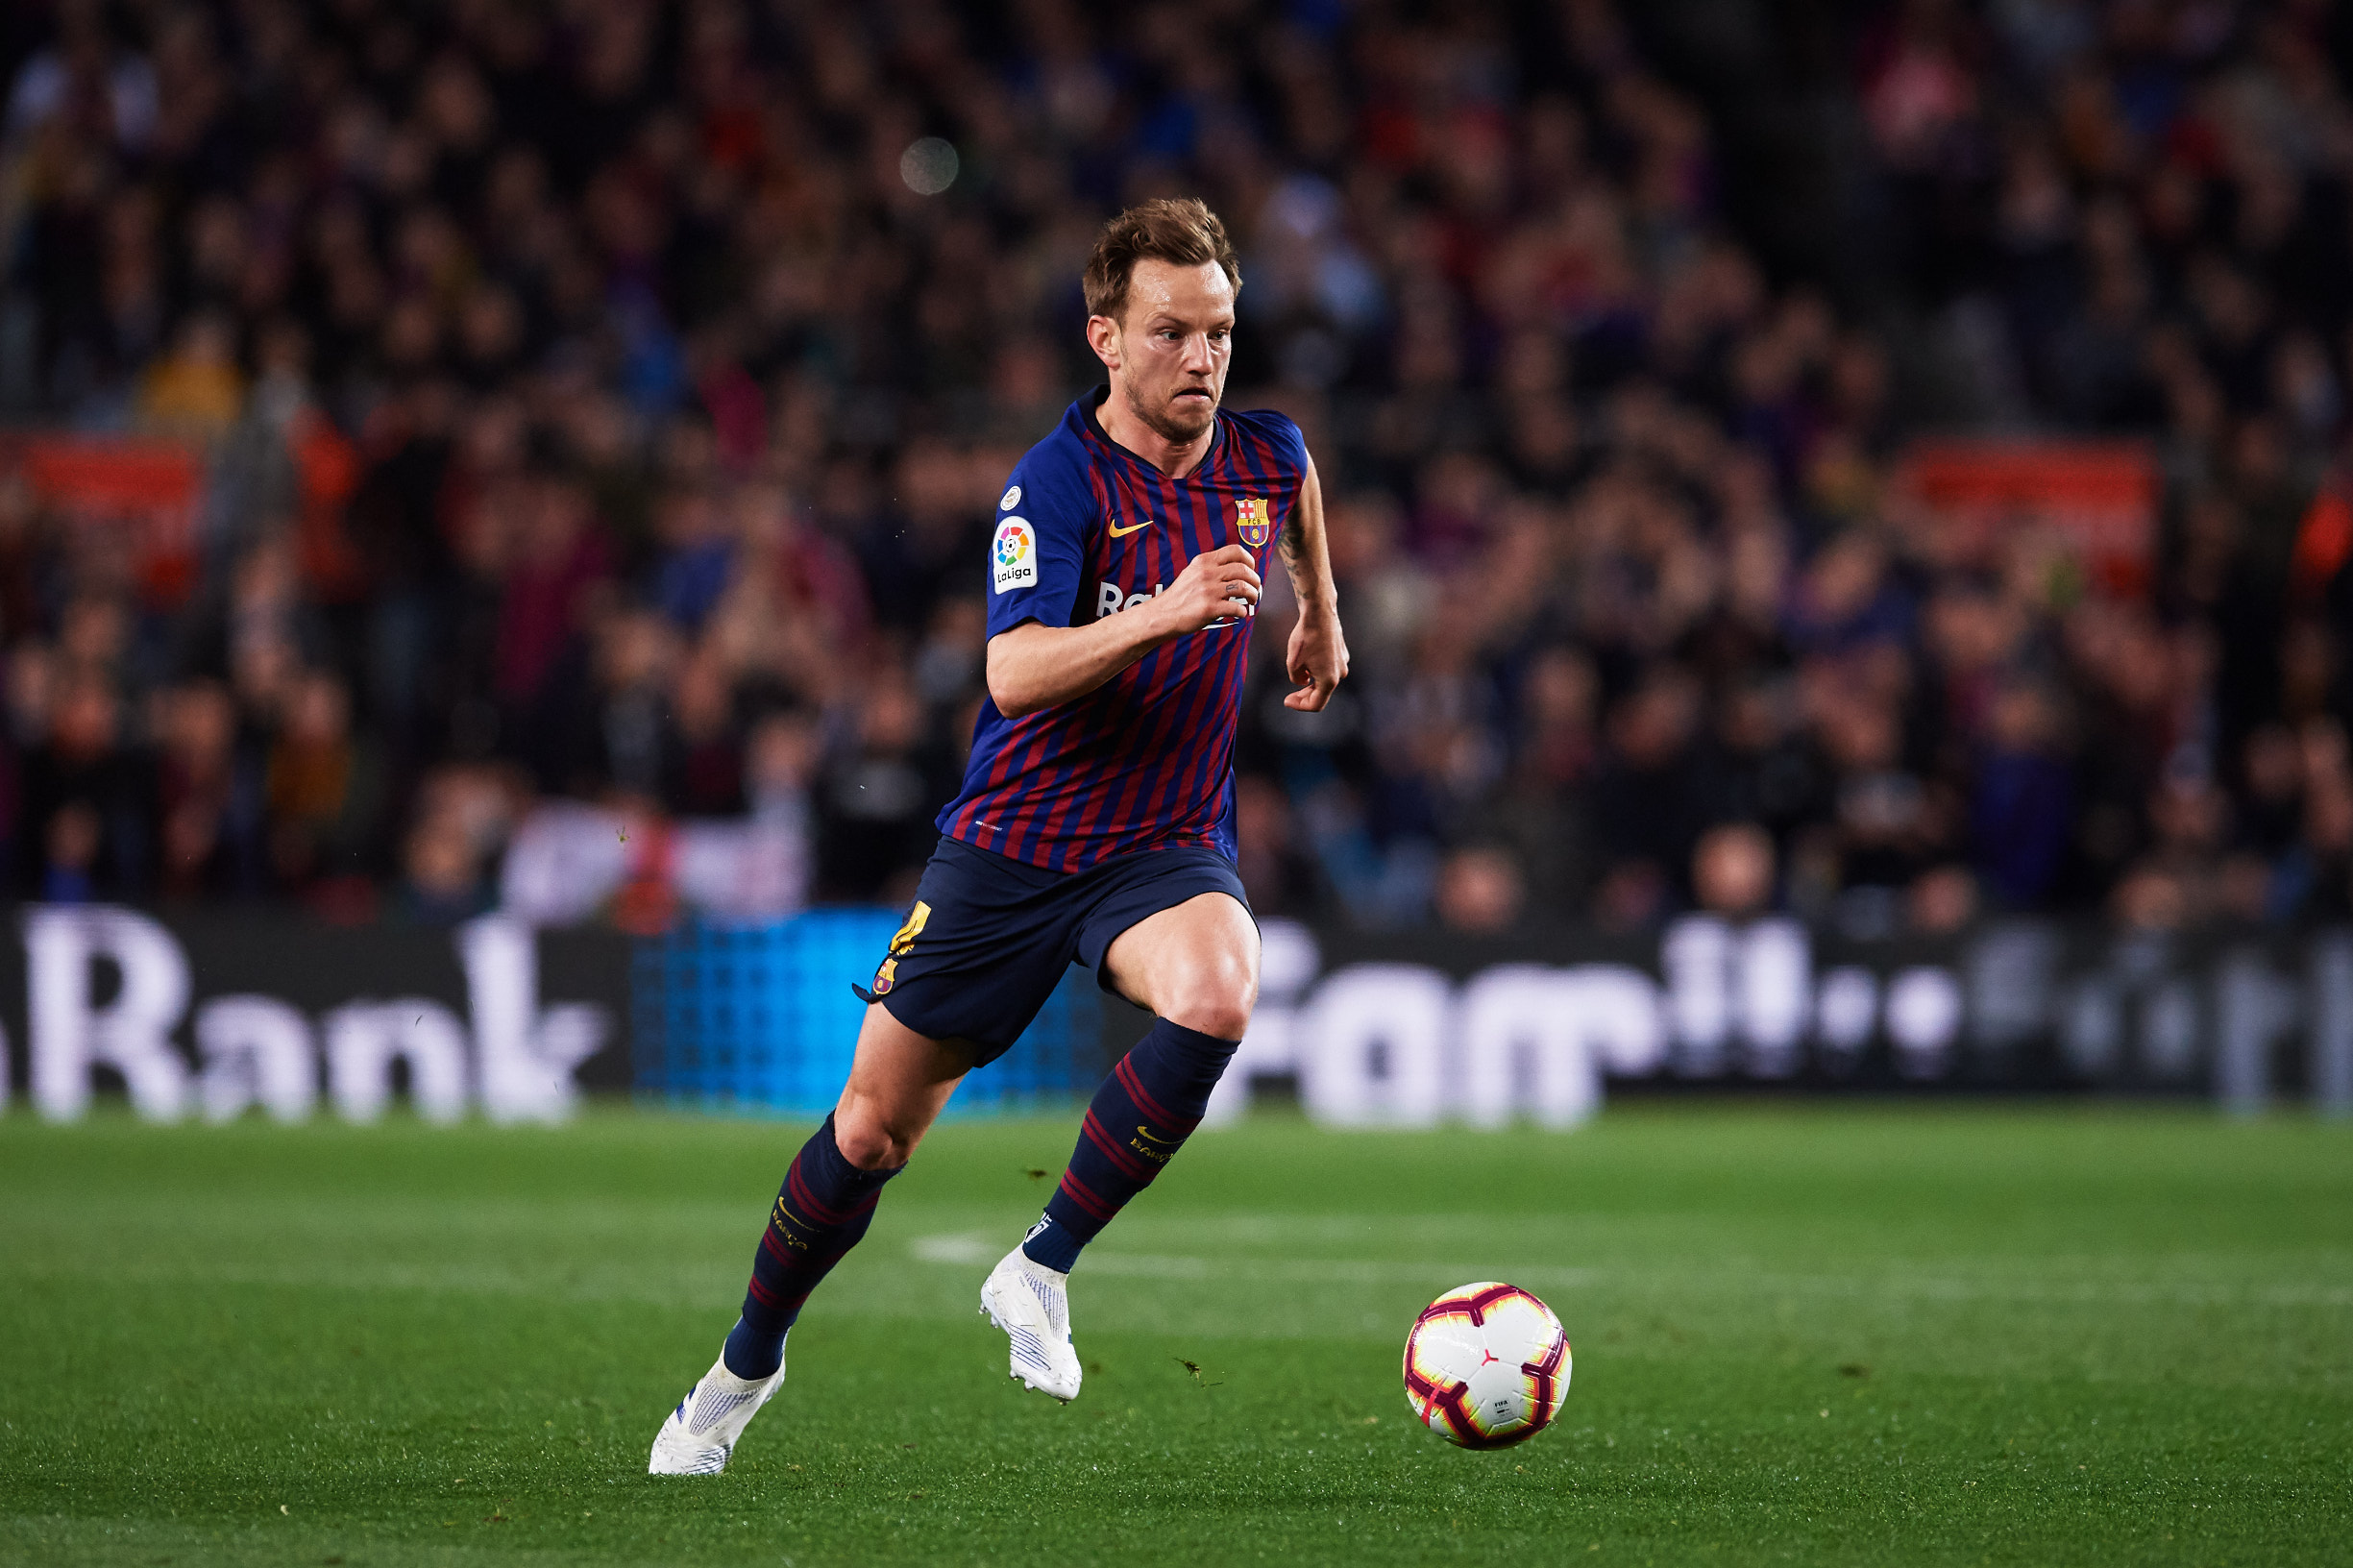 BARCELONA, SPAIN - APRIL 06: Ivan Rakitic of FC Barcelona runs the ball during the La Liga match between FC Barcelona and  Club Atletico de Madrid at Camp Nou on April 06, 2019 in Barcelona, Spain. (Photo by Alex Caparros/Getty Images)